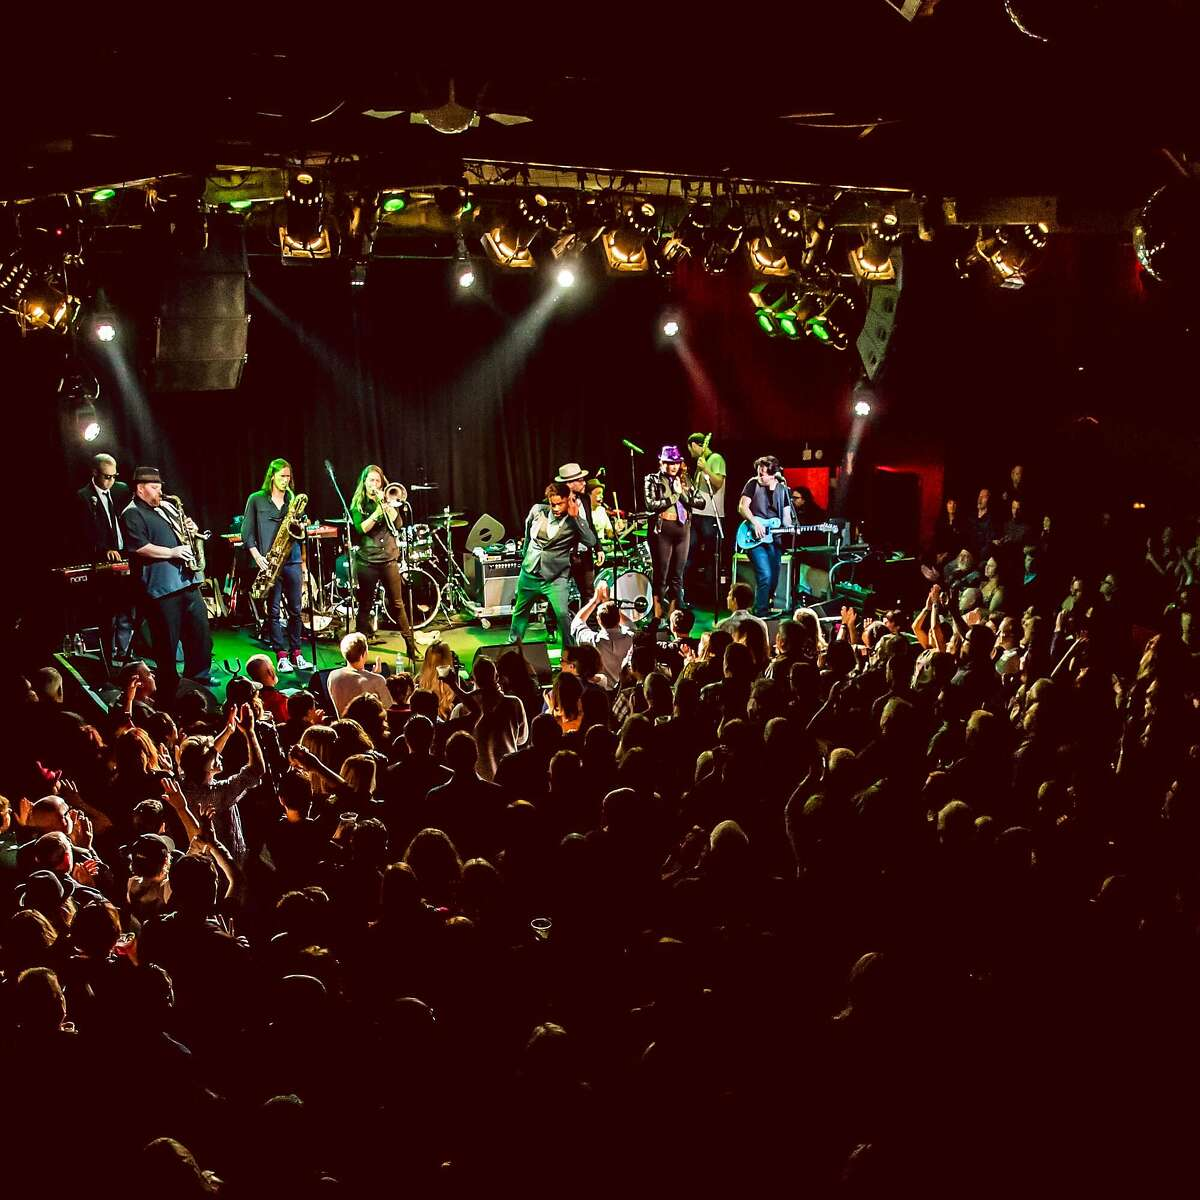 Soul Ska performs at the Great American Music hall on Friday, March 23, 2018